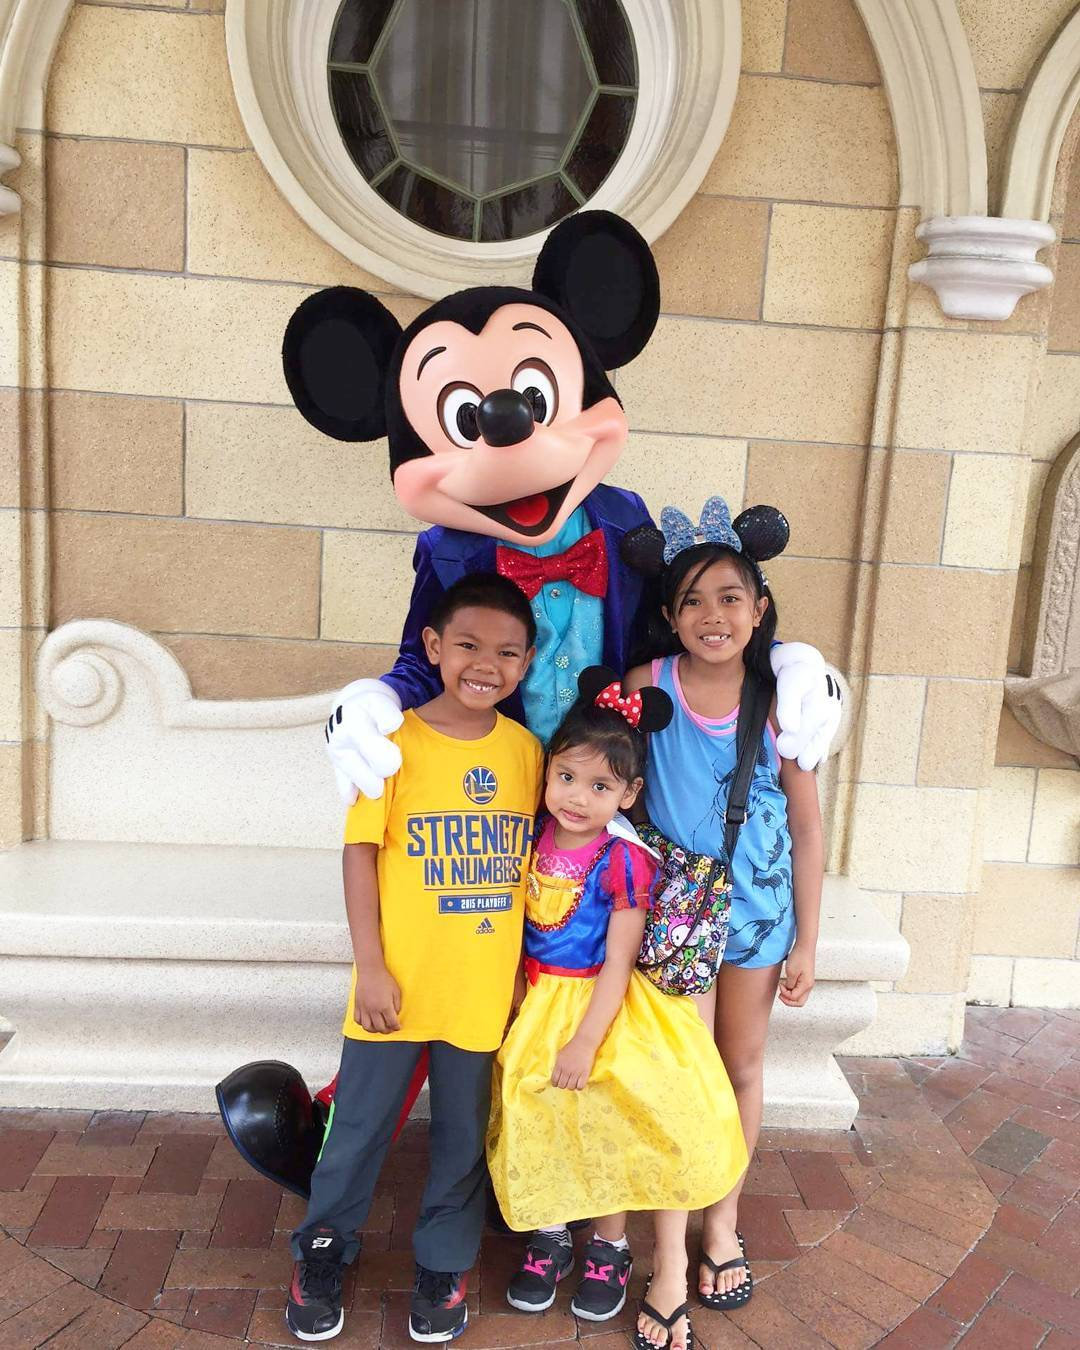 <div class='meta'><div class='origin-logo' data-origin='none'></div><span class='caption-text' data-credit='mommywifeyxtianne3/Instagram'>The Bay Area celebrates the 88th Birthday of Mickey Mouse on Nov. 18, 2016.</span></div>